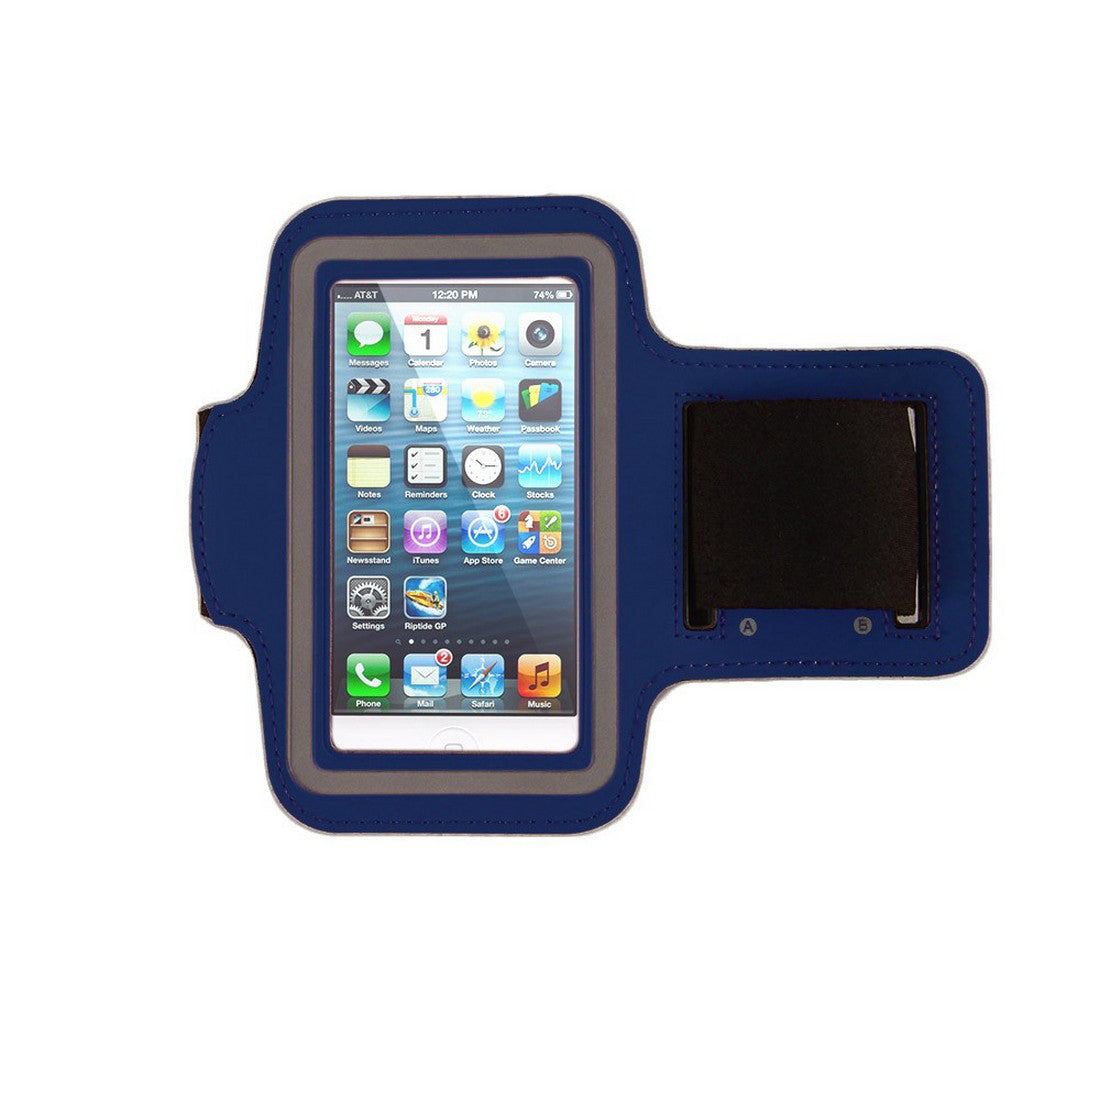 Neoprene Armband Size 01 For Iphone 4G/4S/5/5C/5S & I touch 5th Gen & Samsung i437/s4M & LG W7 & kyocera C6721/C5120 & Nokia 521 Dark Blue